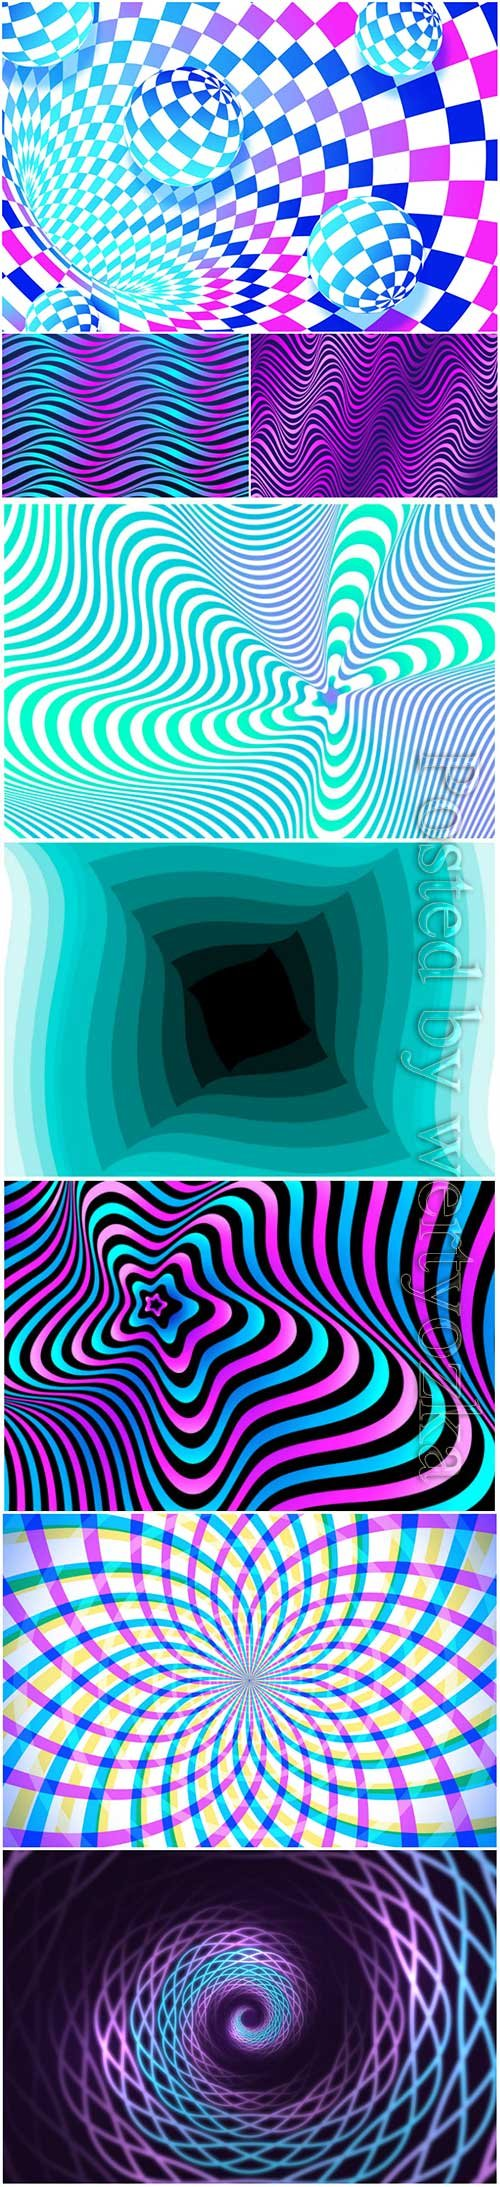 Psychedelic optical illusion vector background # 8